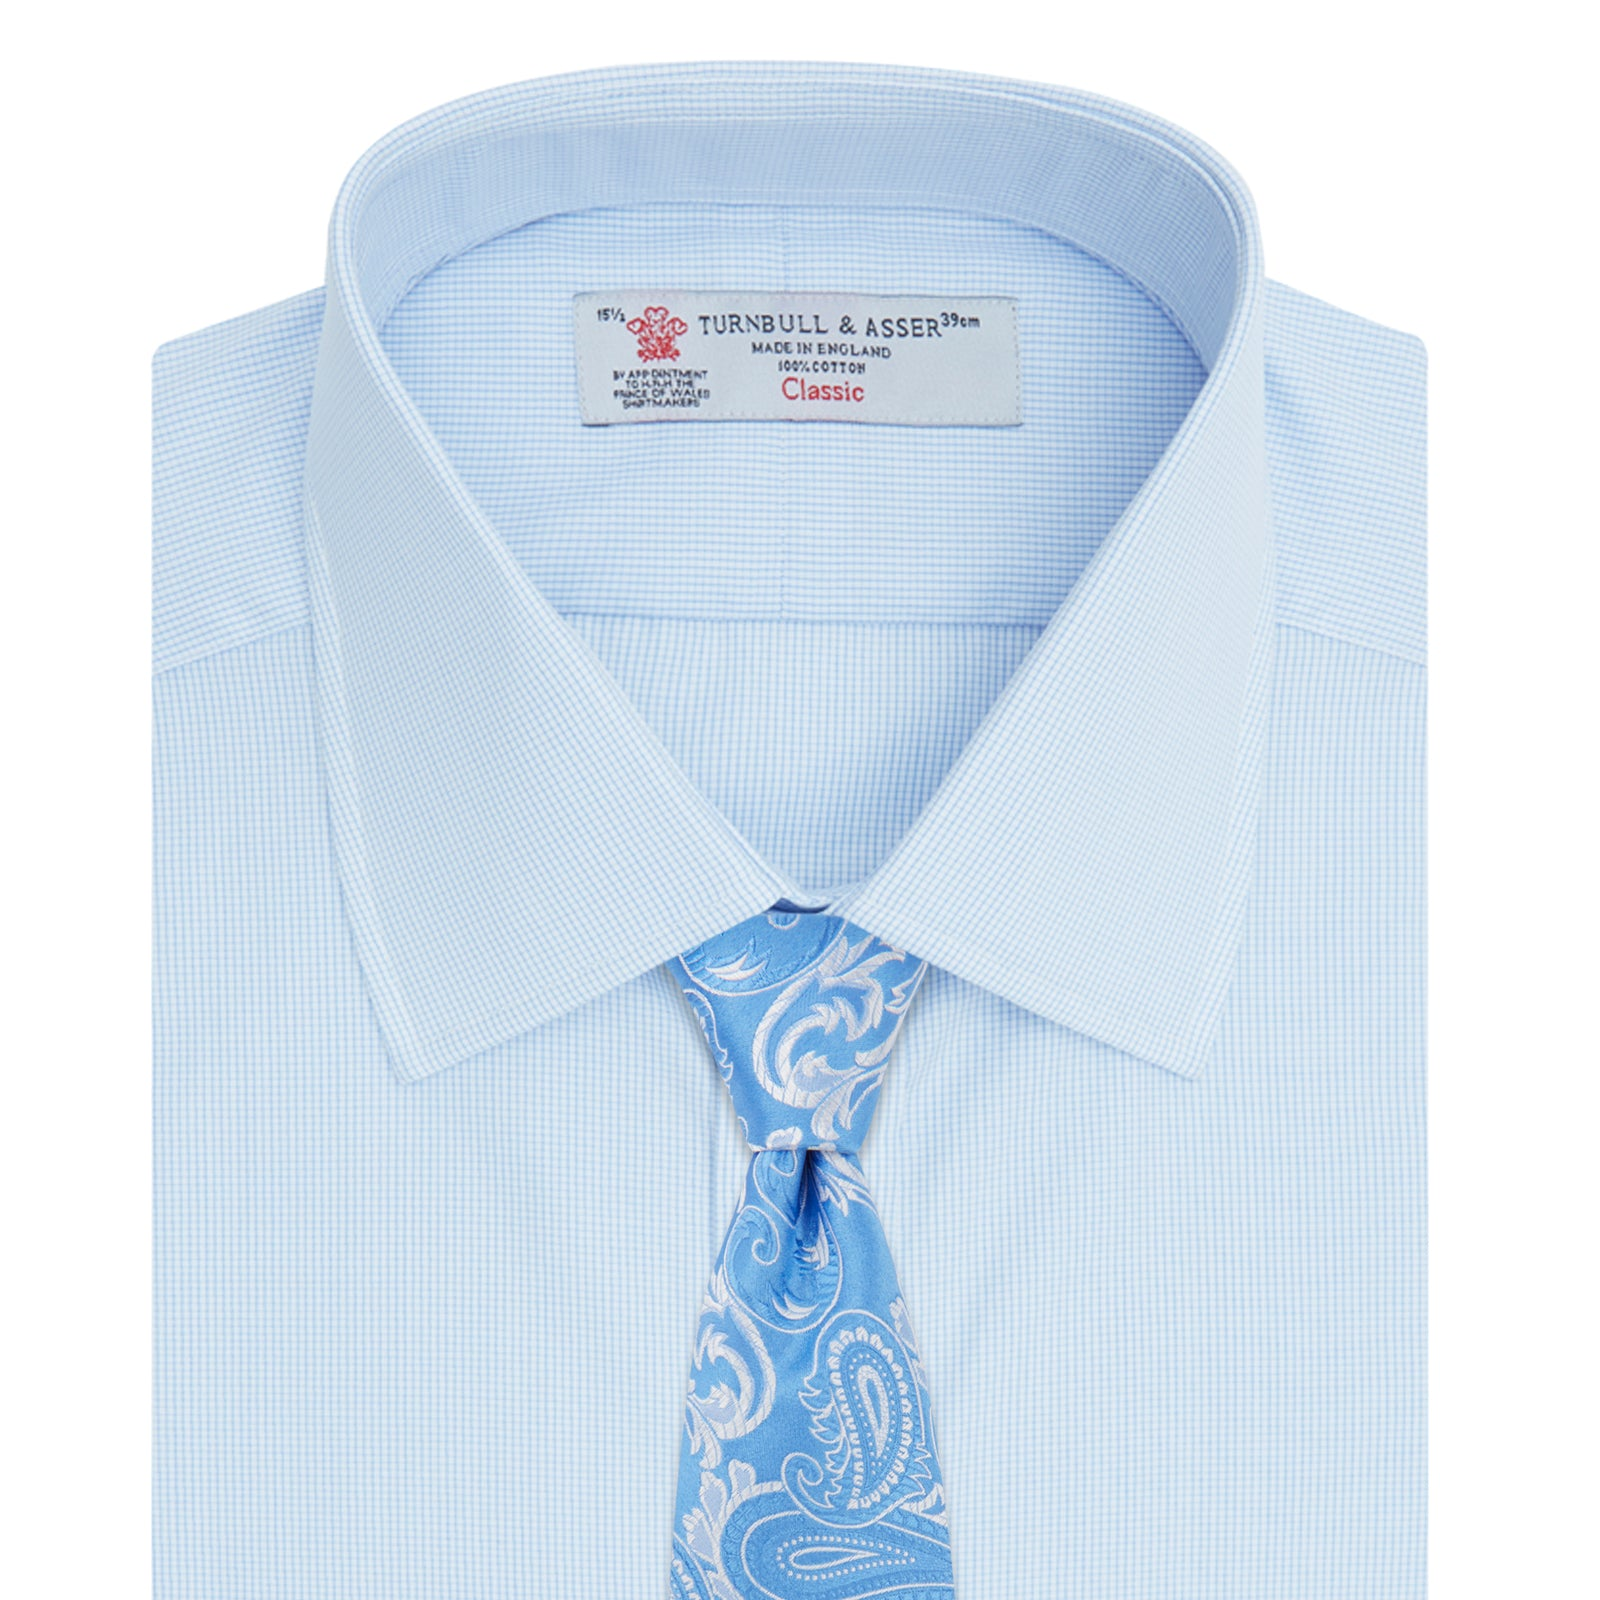 Light Blue Fine Check Shirt with T&A Collar and Double Cuffs